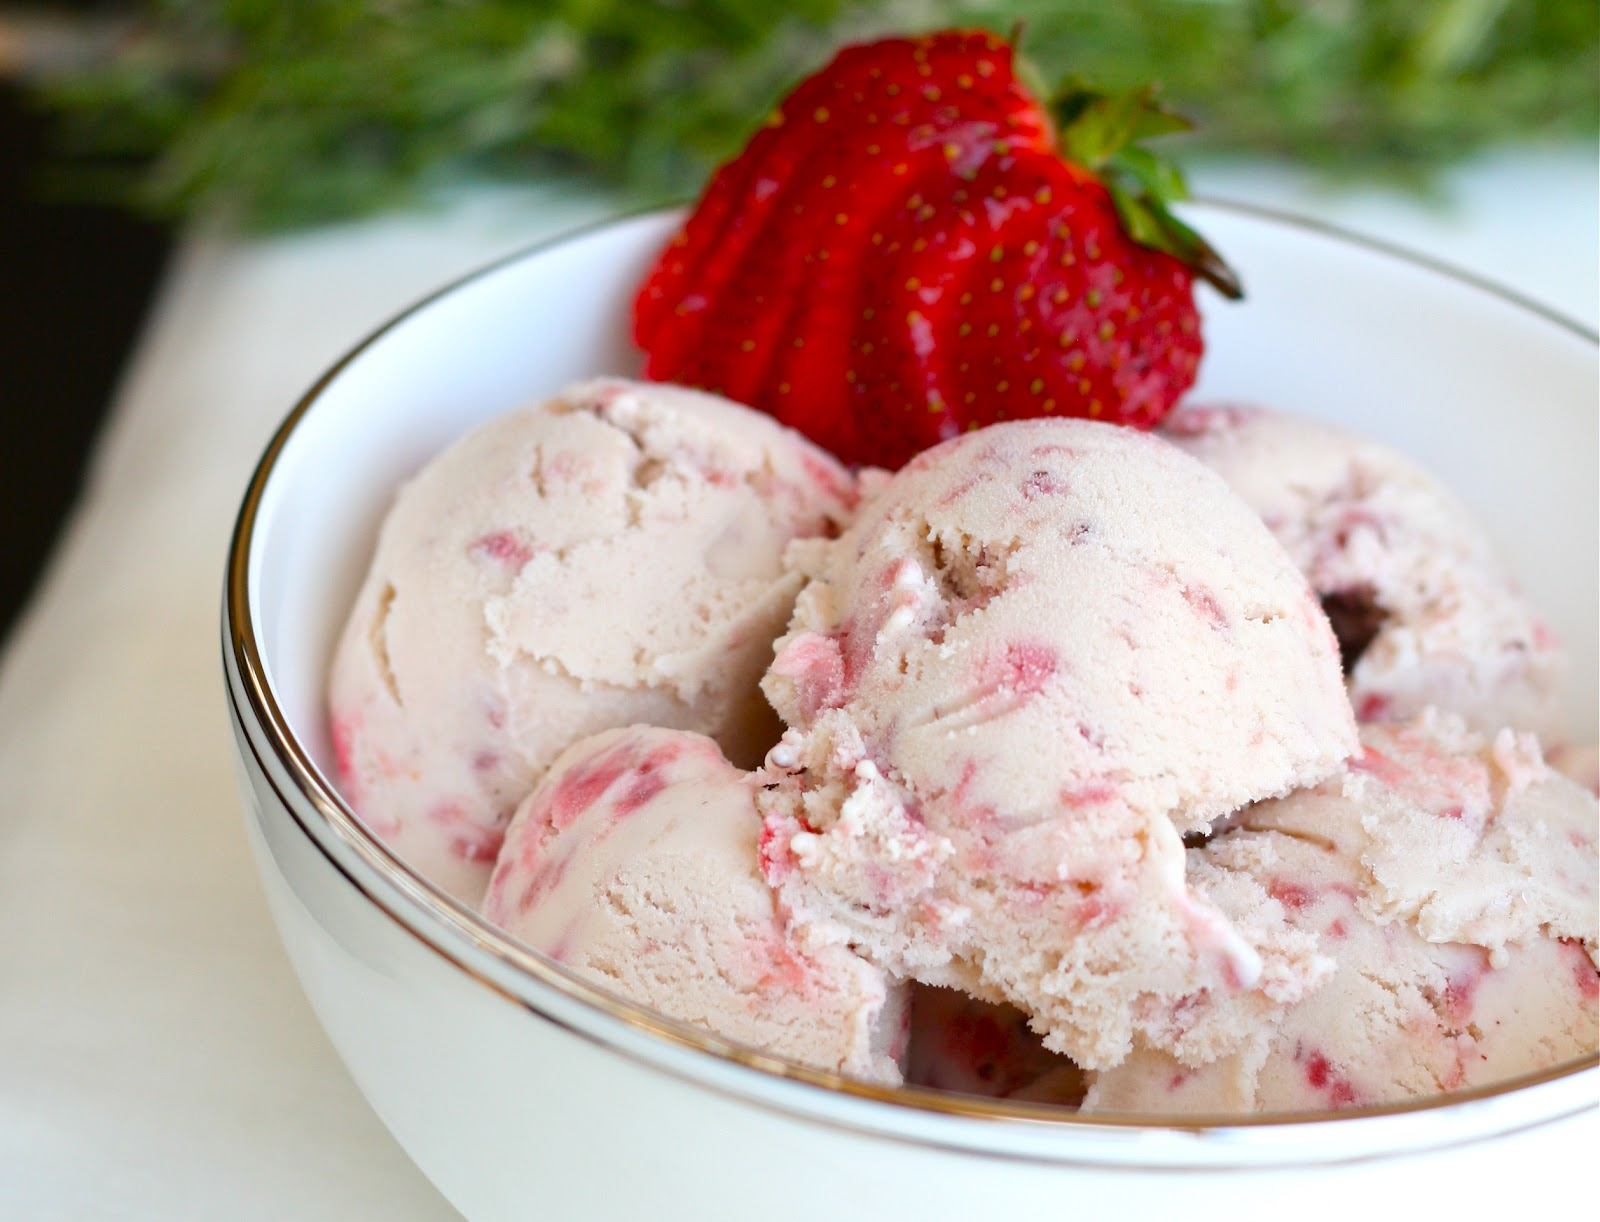 is for: Strawberry Balsamic Rosemary Ice Cream